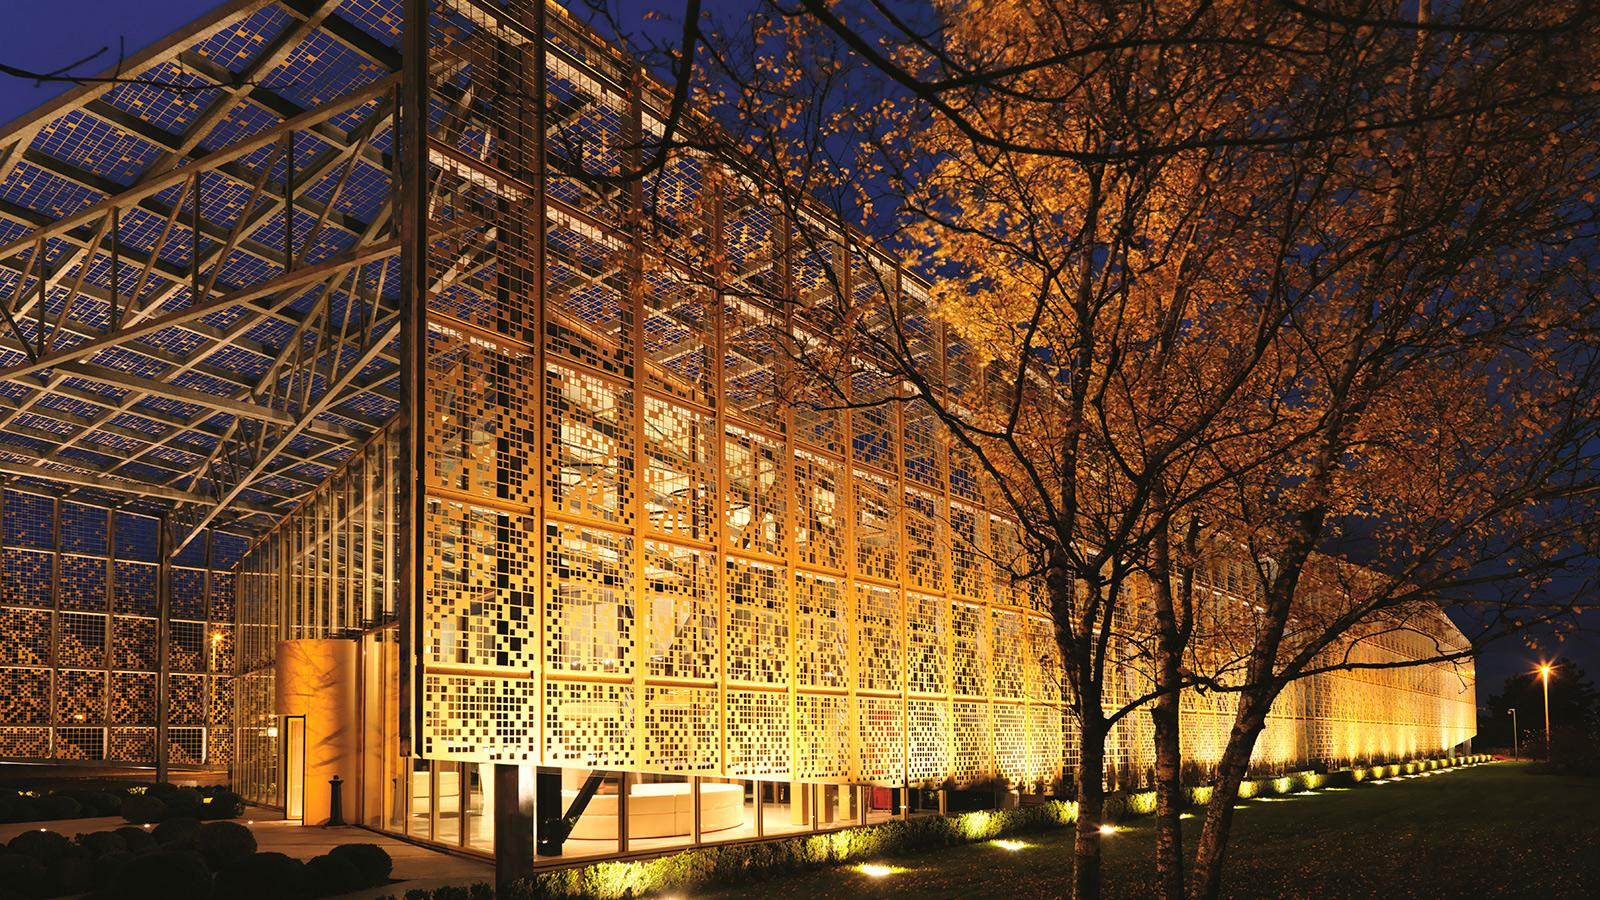 Architect Jacques Ferrier designed the Piper-Heidsieck production facility in Reims.